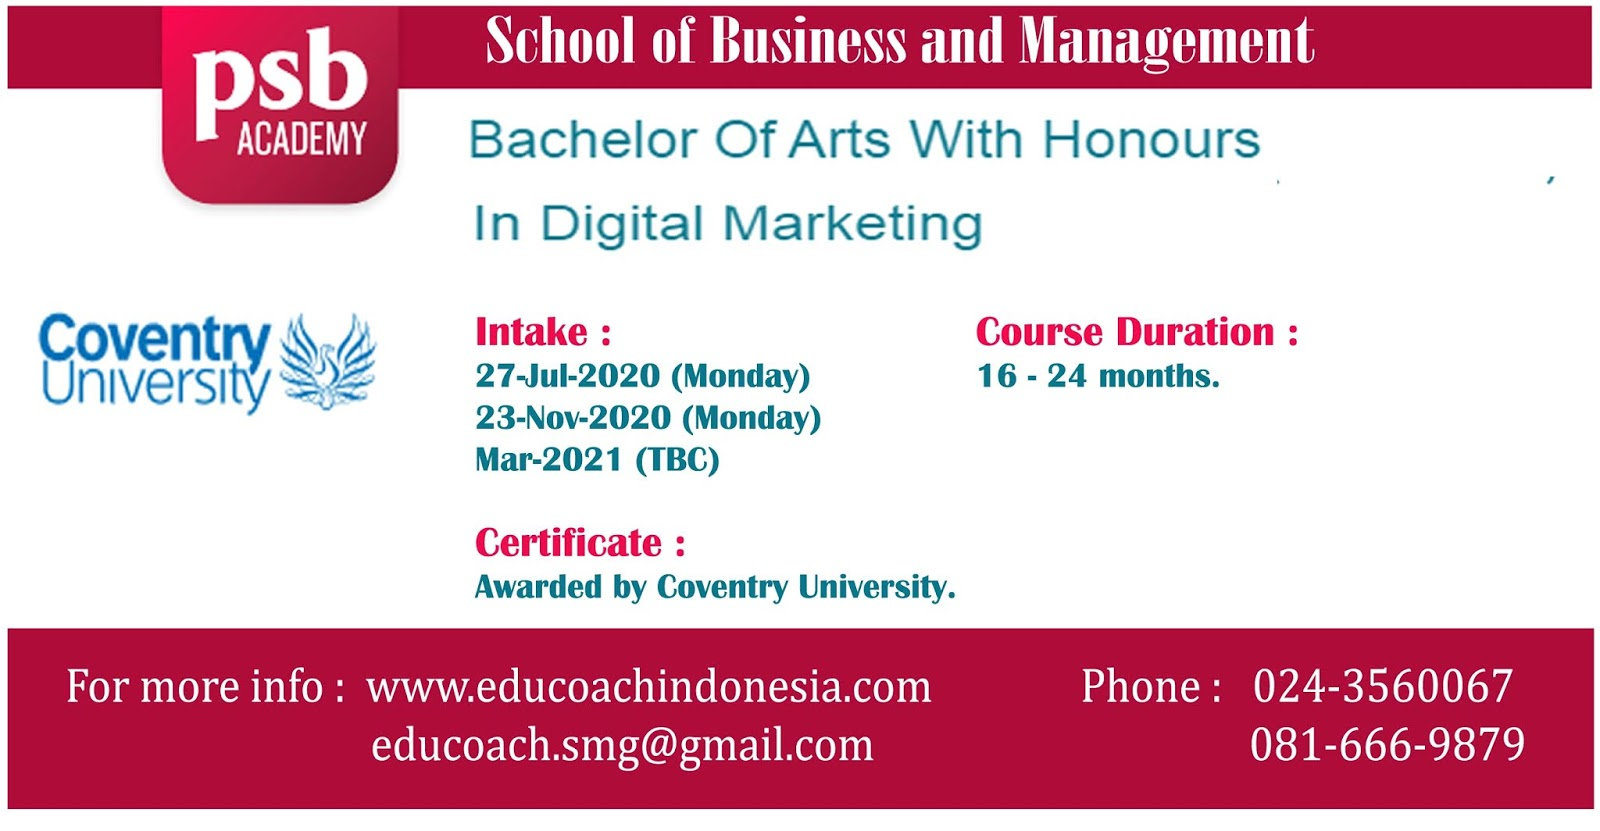 Bachelor Of Arts With Honours In Digital Marketing | University of Coventry | PSB Academy Singapura